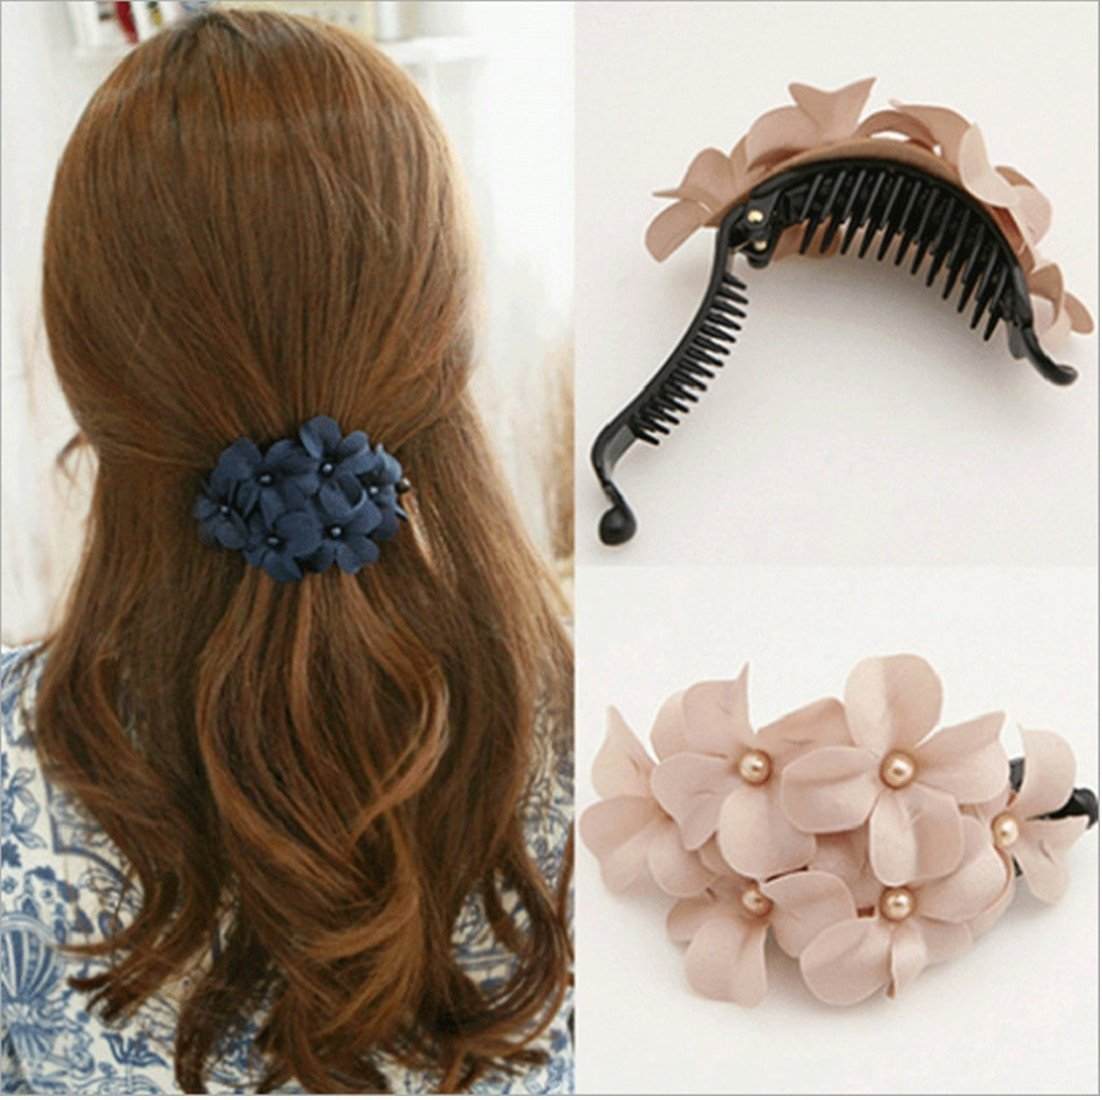 10pcs Large Plastic Hair Clamp Comb Clip Claw Women Lady Hair Accessories